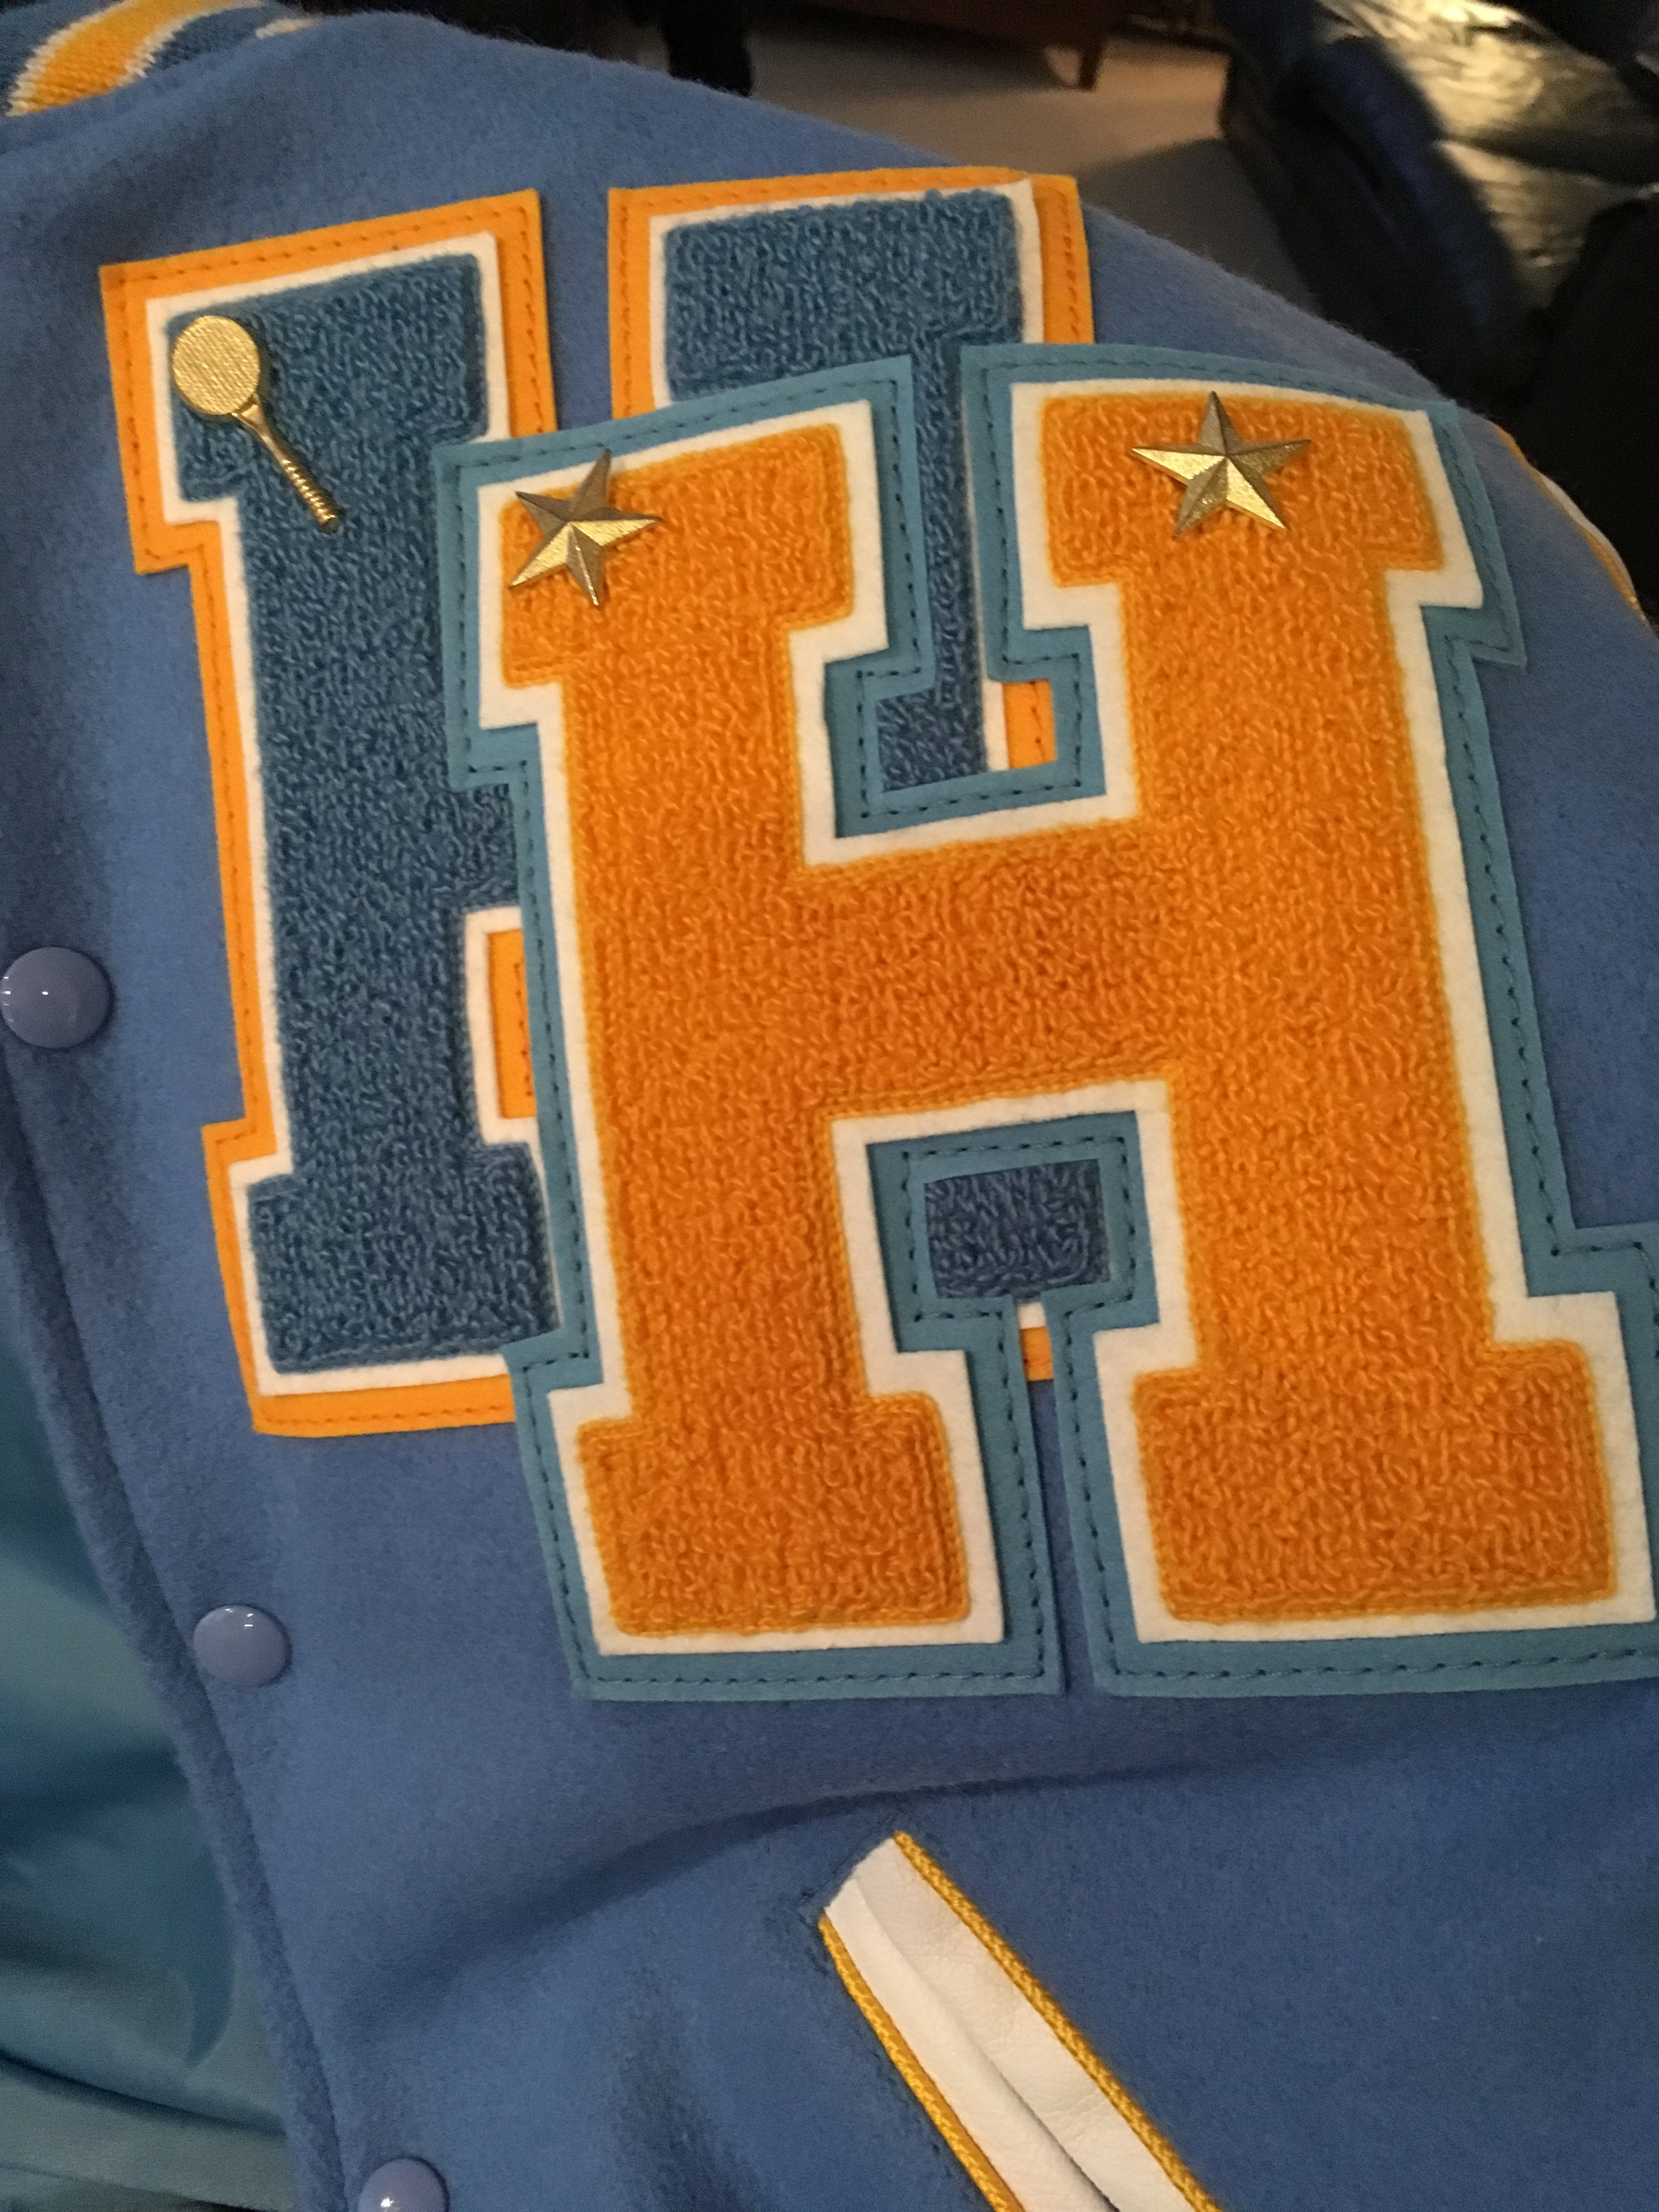 THE BLUE LETTER H IS TUNAKAIMANU'S SPORTS LETTER & AND GOLD LETTER H IS HER ACADEMIC'S LETTER. MALO SISU. H STANDS FOR HERITAGE HIGH SCHOOL.